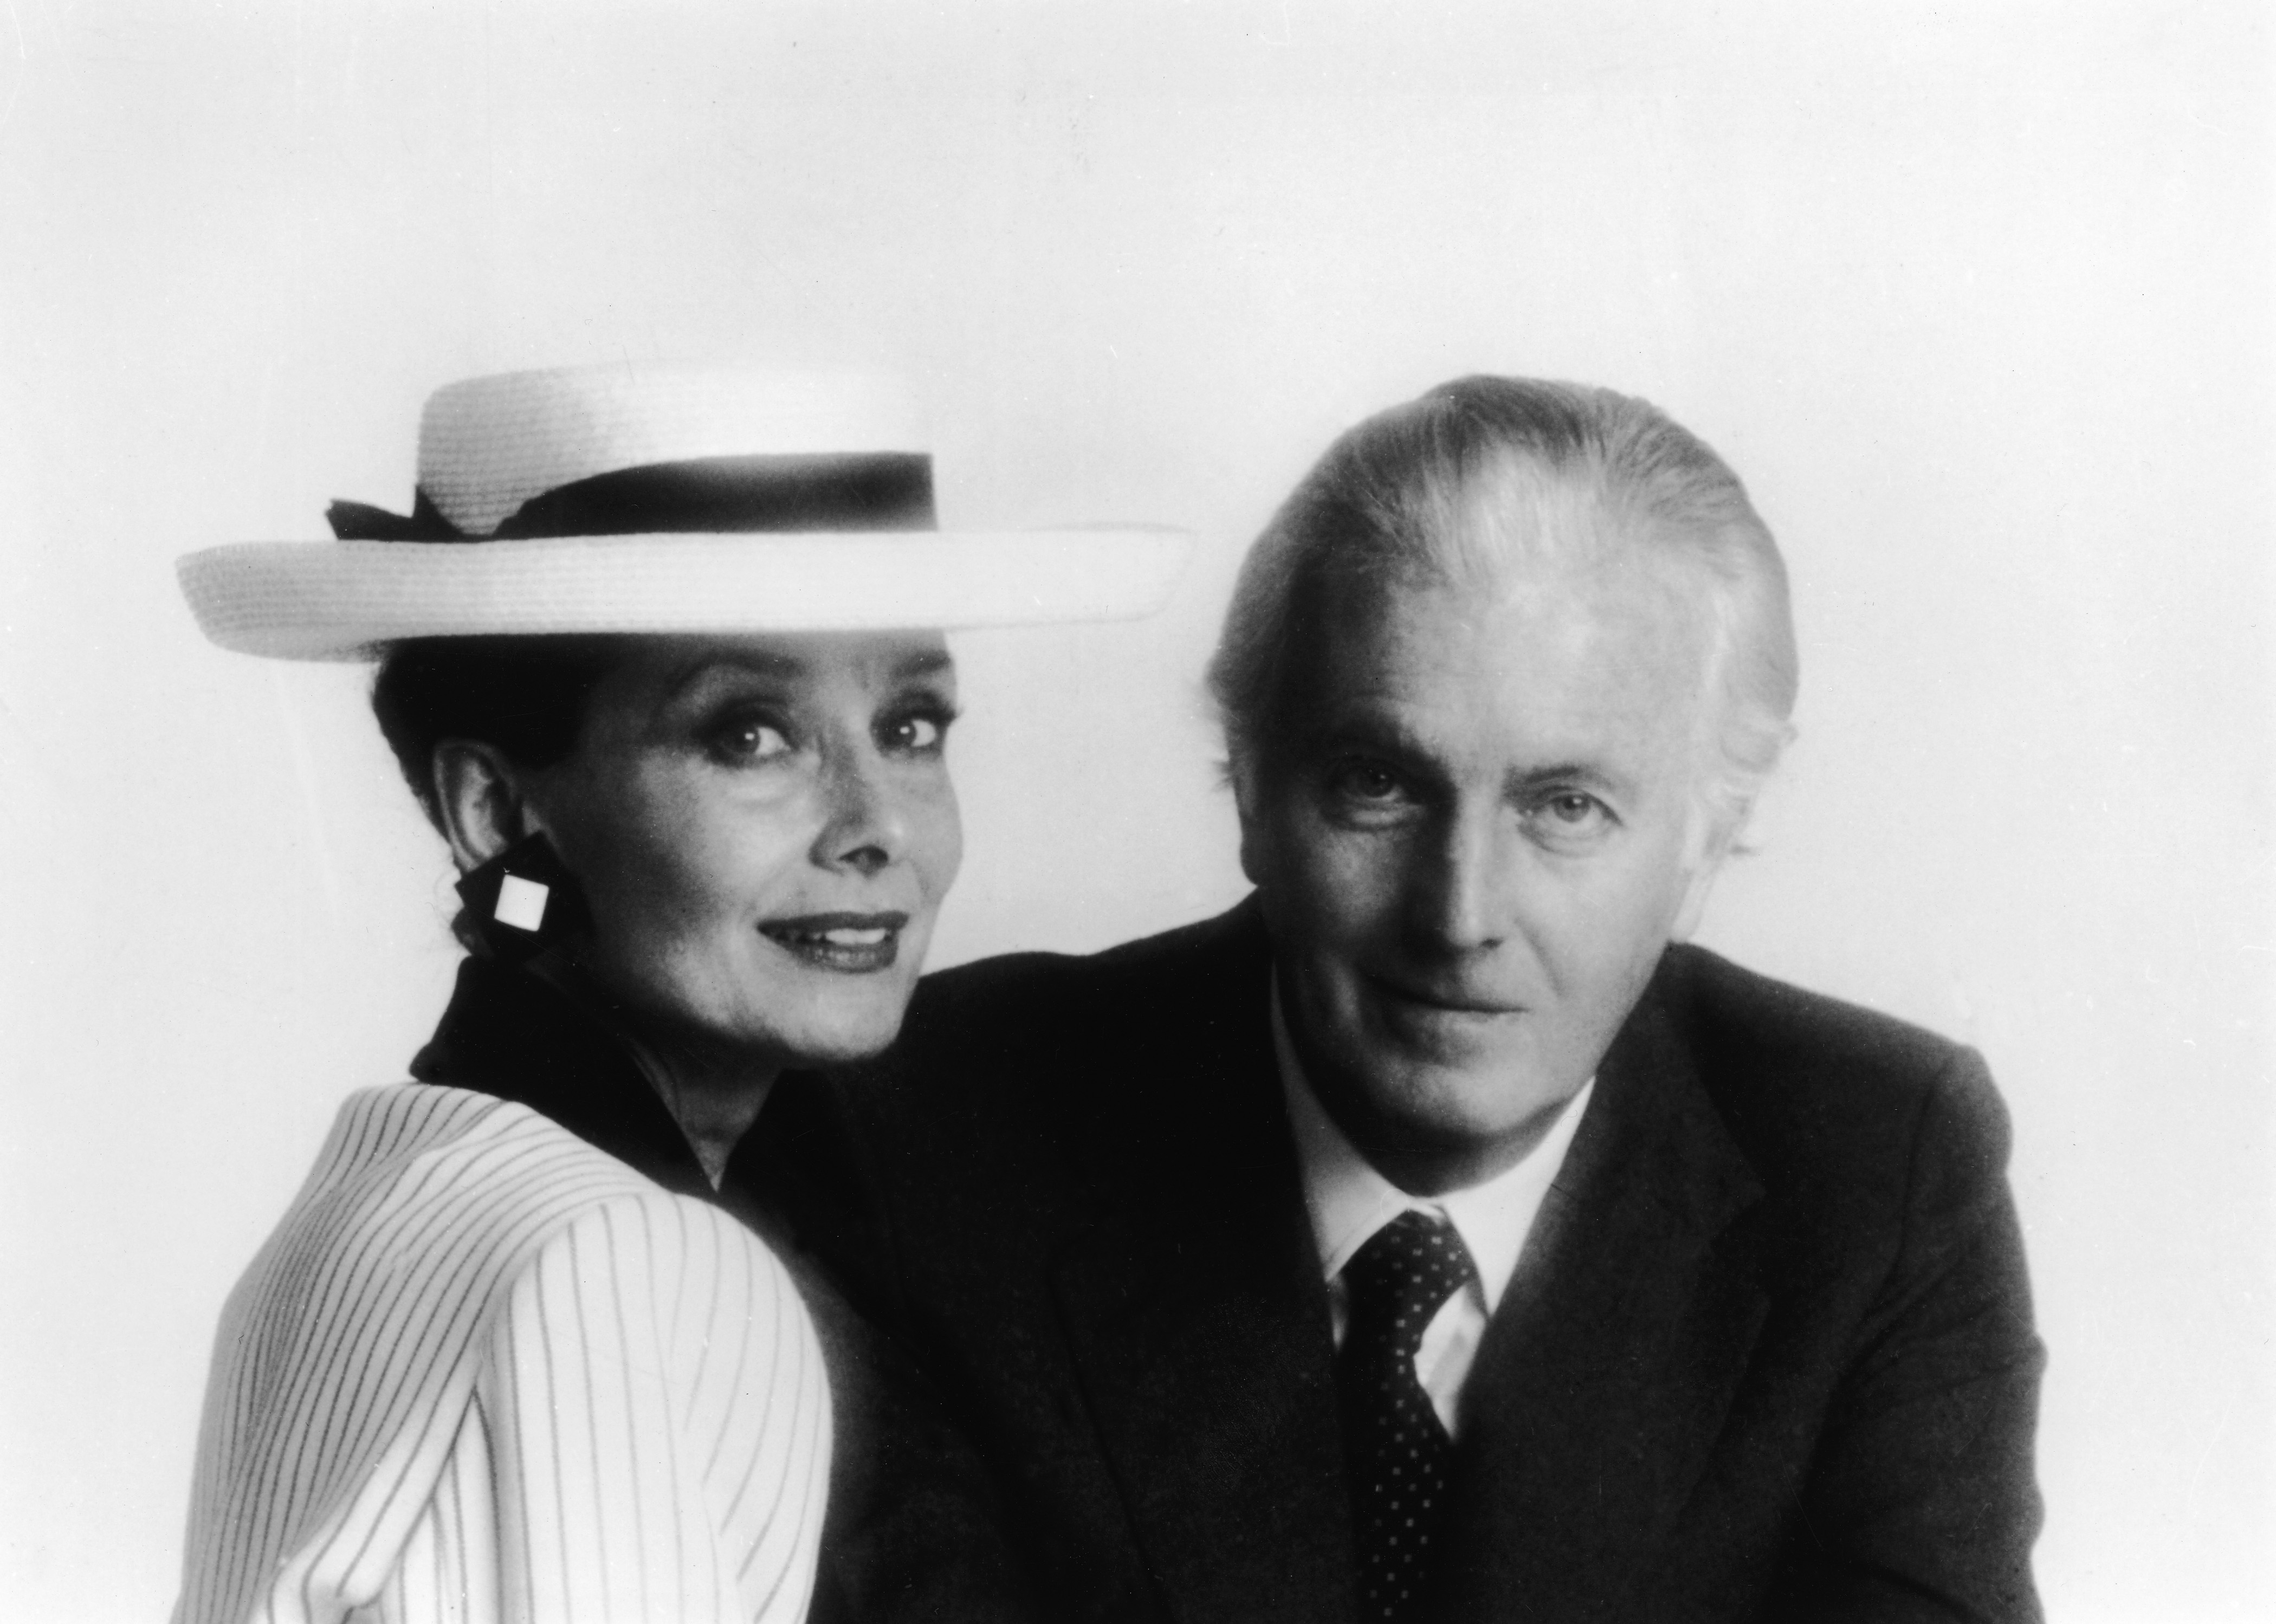 Addio a Hubert de Givenchy